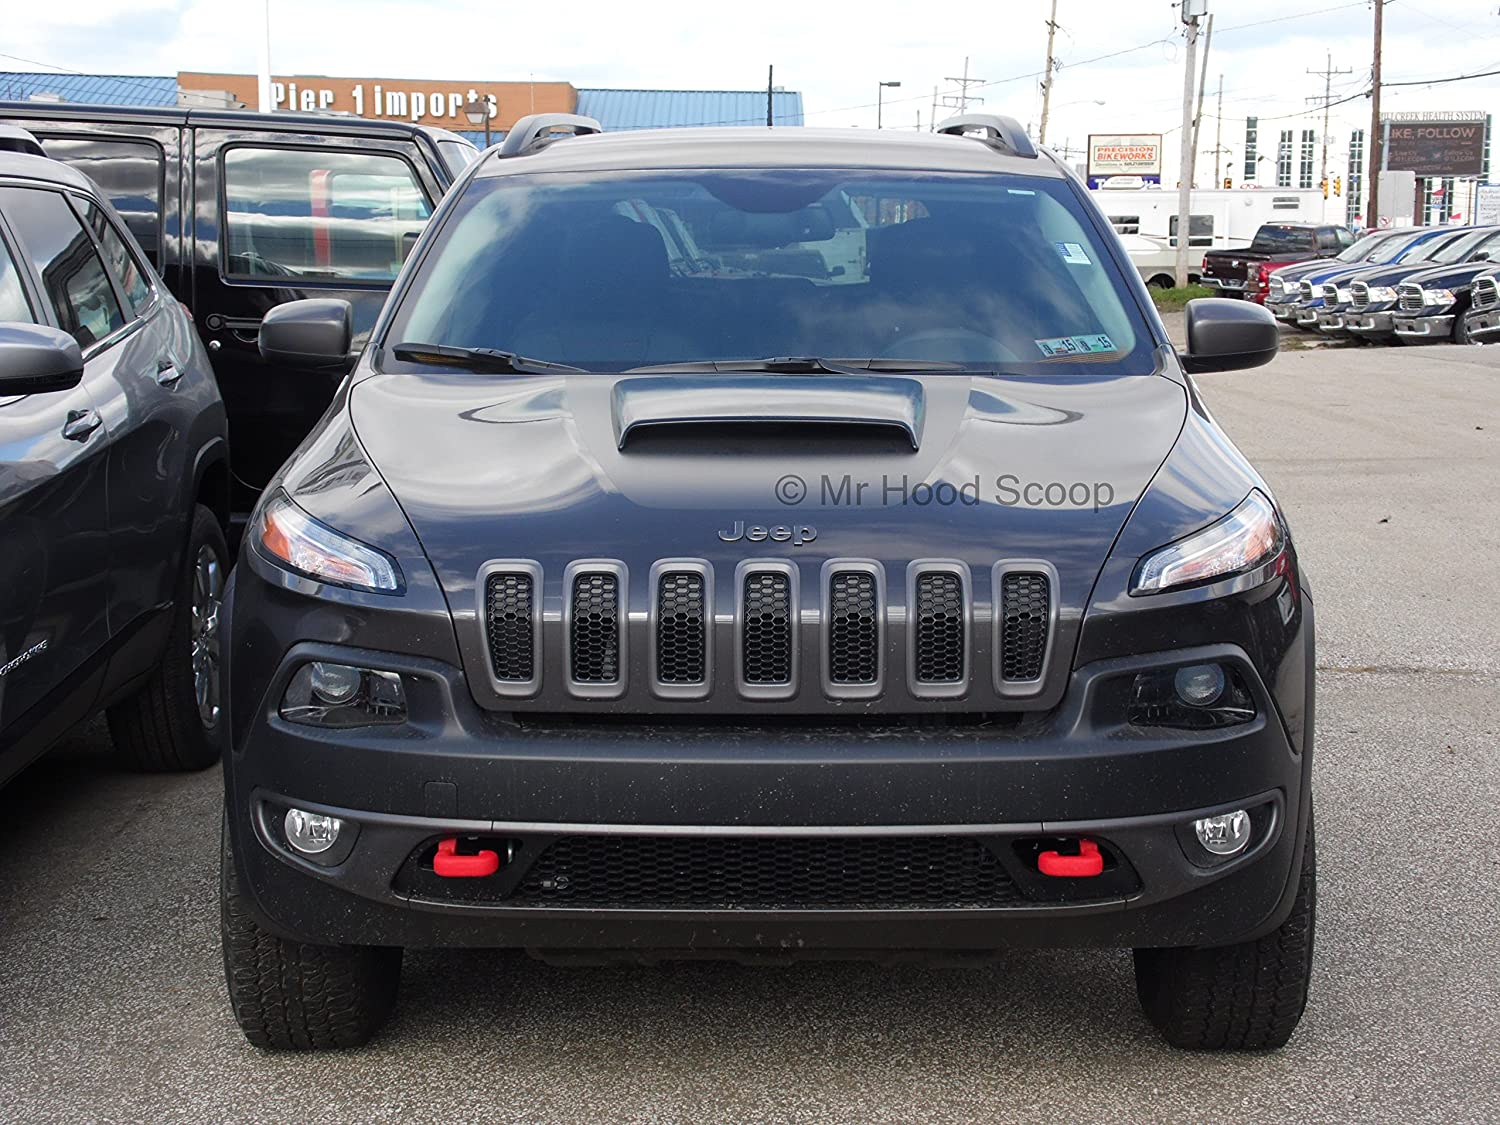 Xtreme Autosport Unpainted Hood Scoop Compatible with 2014-2017 Jeep Cherokee and Trailhawk by MrHoodScoop HS003